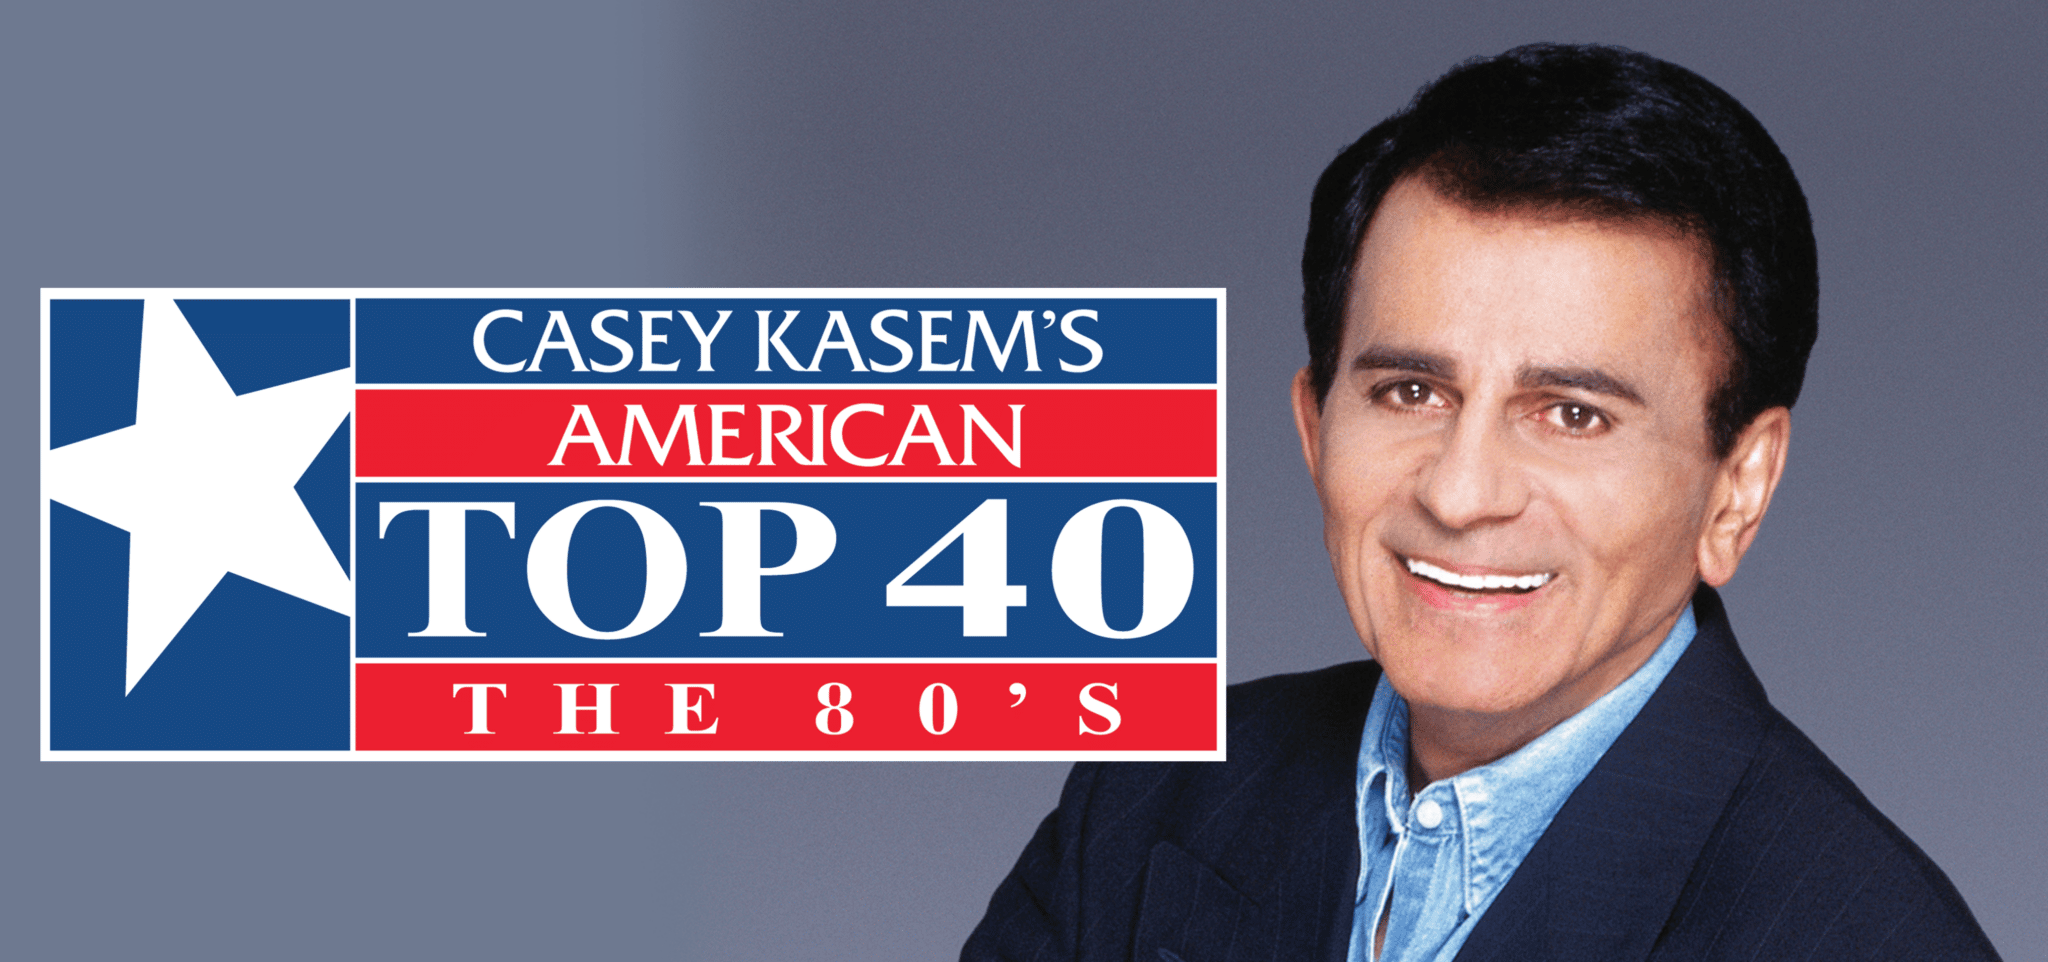 Do you miss Casey Kasem? This radio station brought him back!